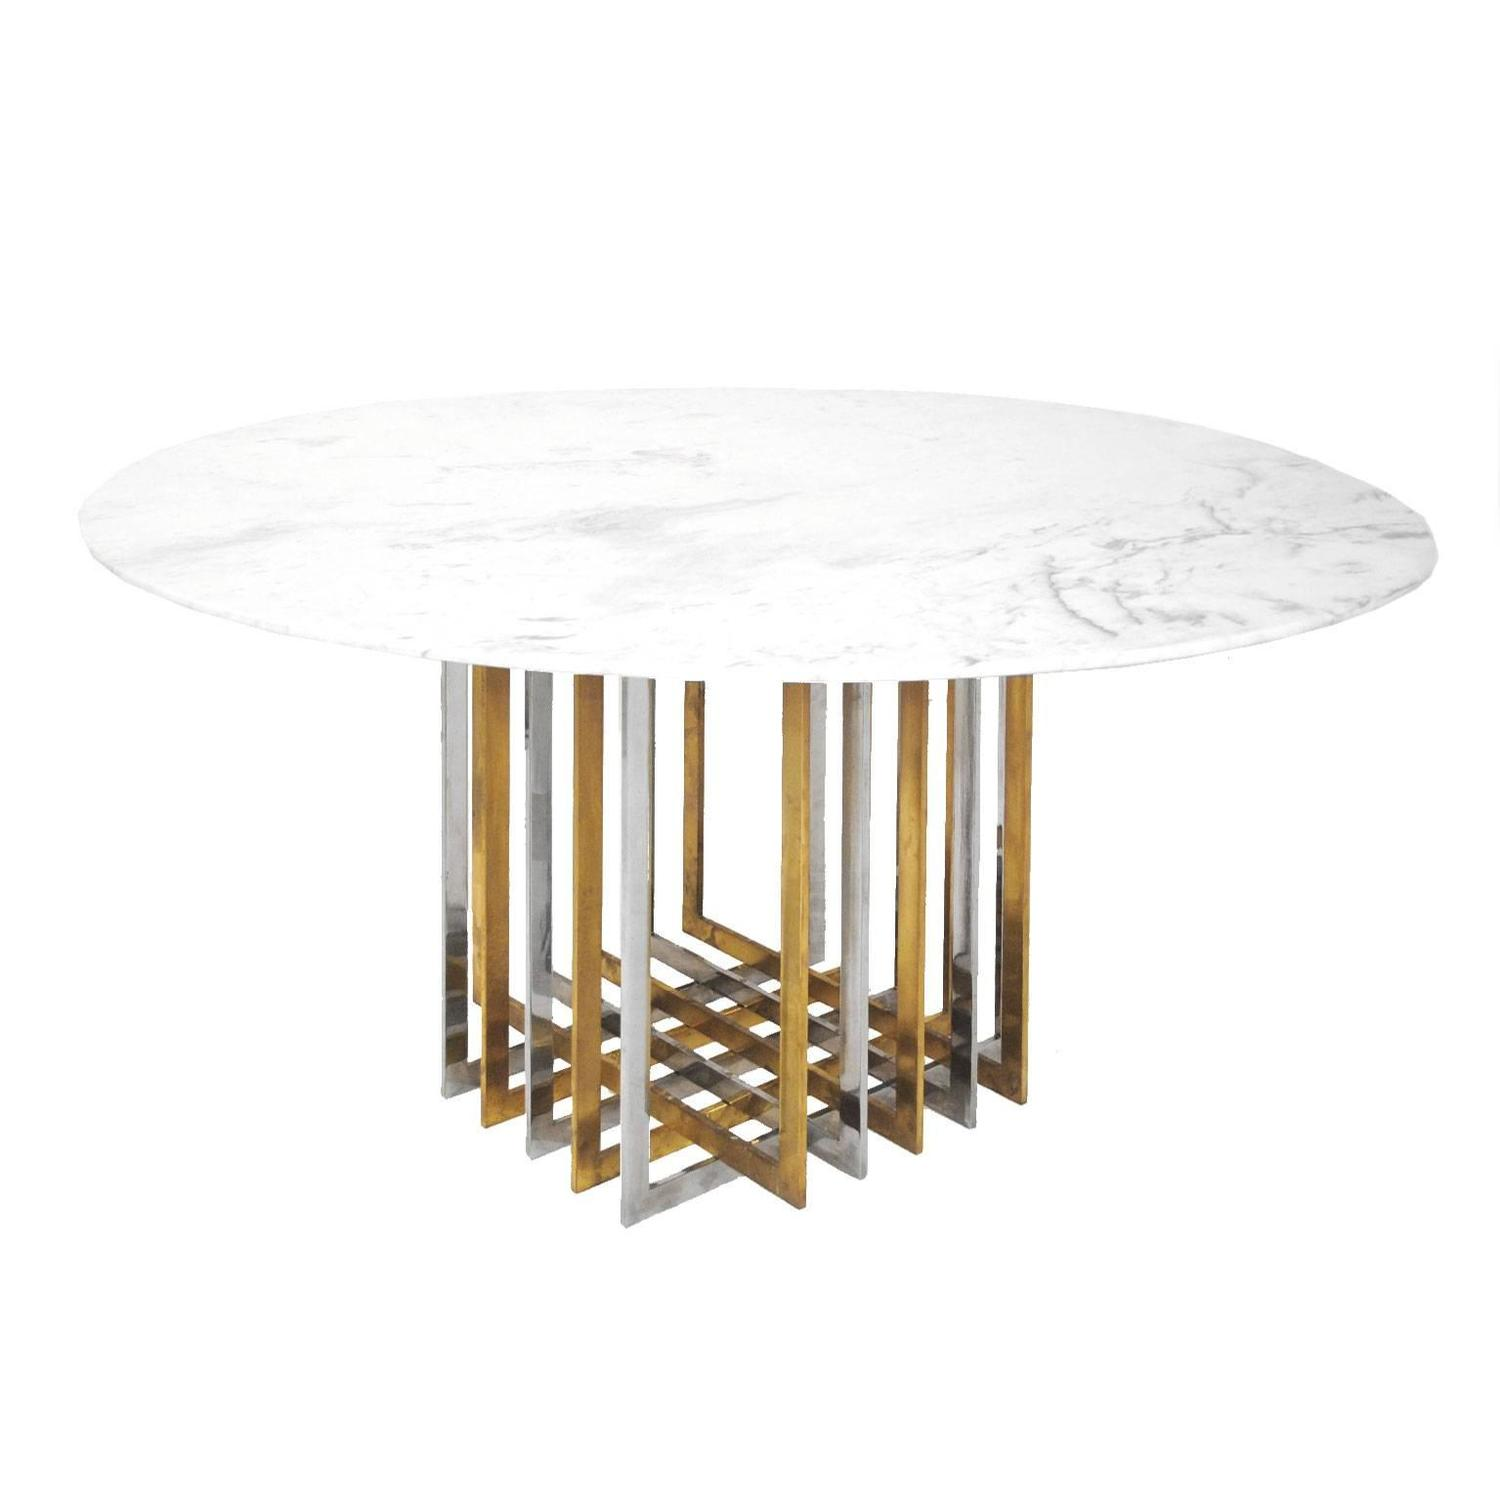 Willy rizzo pedestal table at 1stdibs for Table willy rizzo